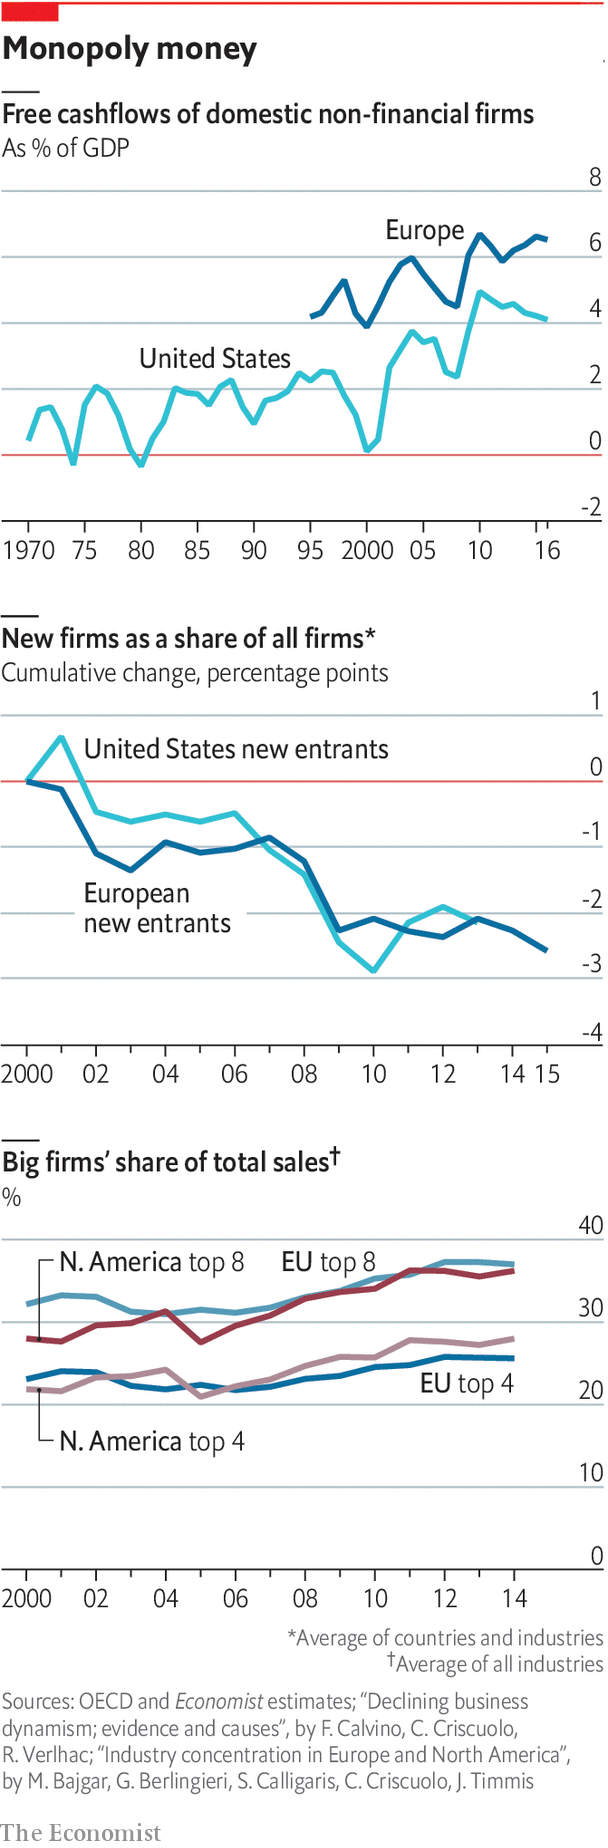 Across the West powerful firms are becoming even more powerful - Competition